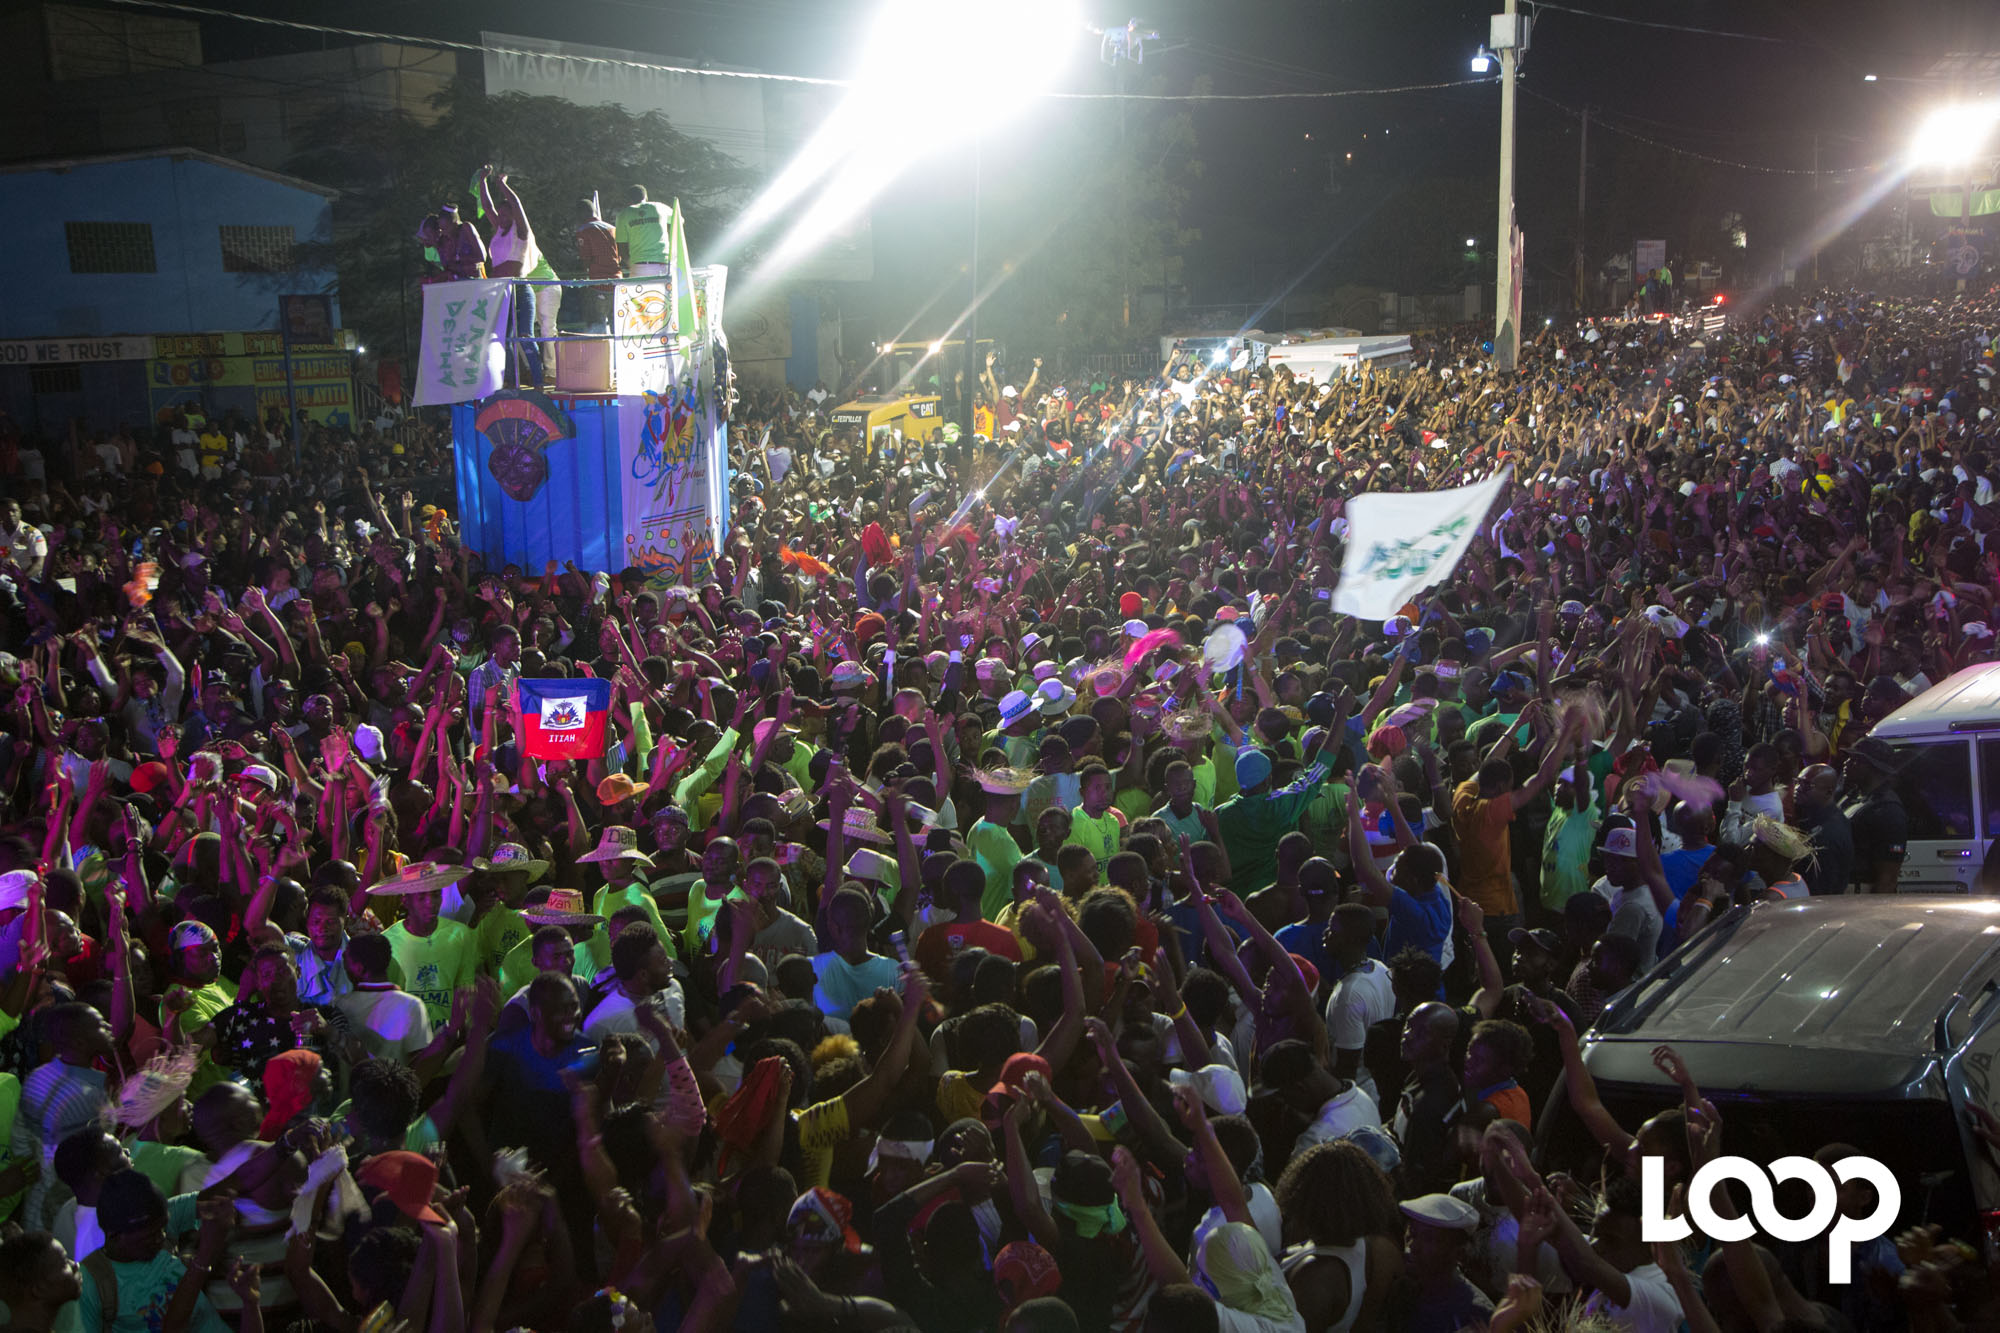 Carnaval de Delmas 201. Photos et videos: Estailove St-val - Loop Haiti